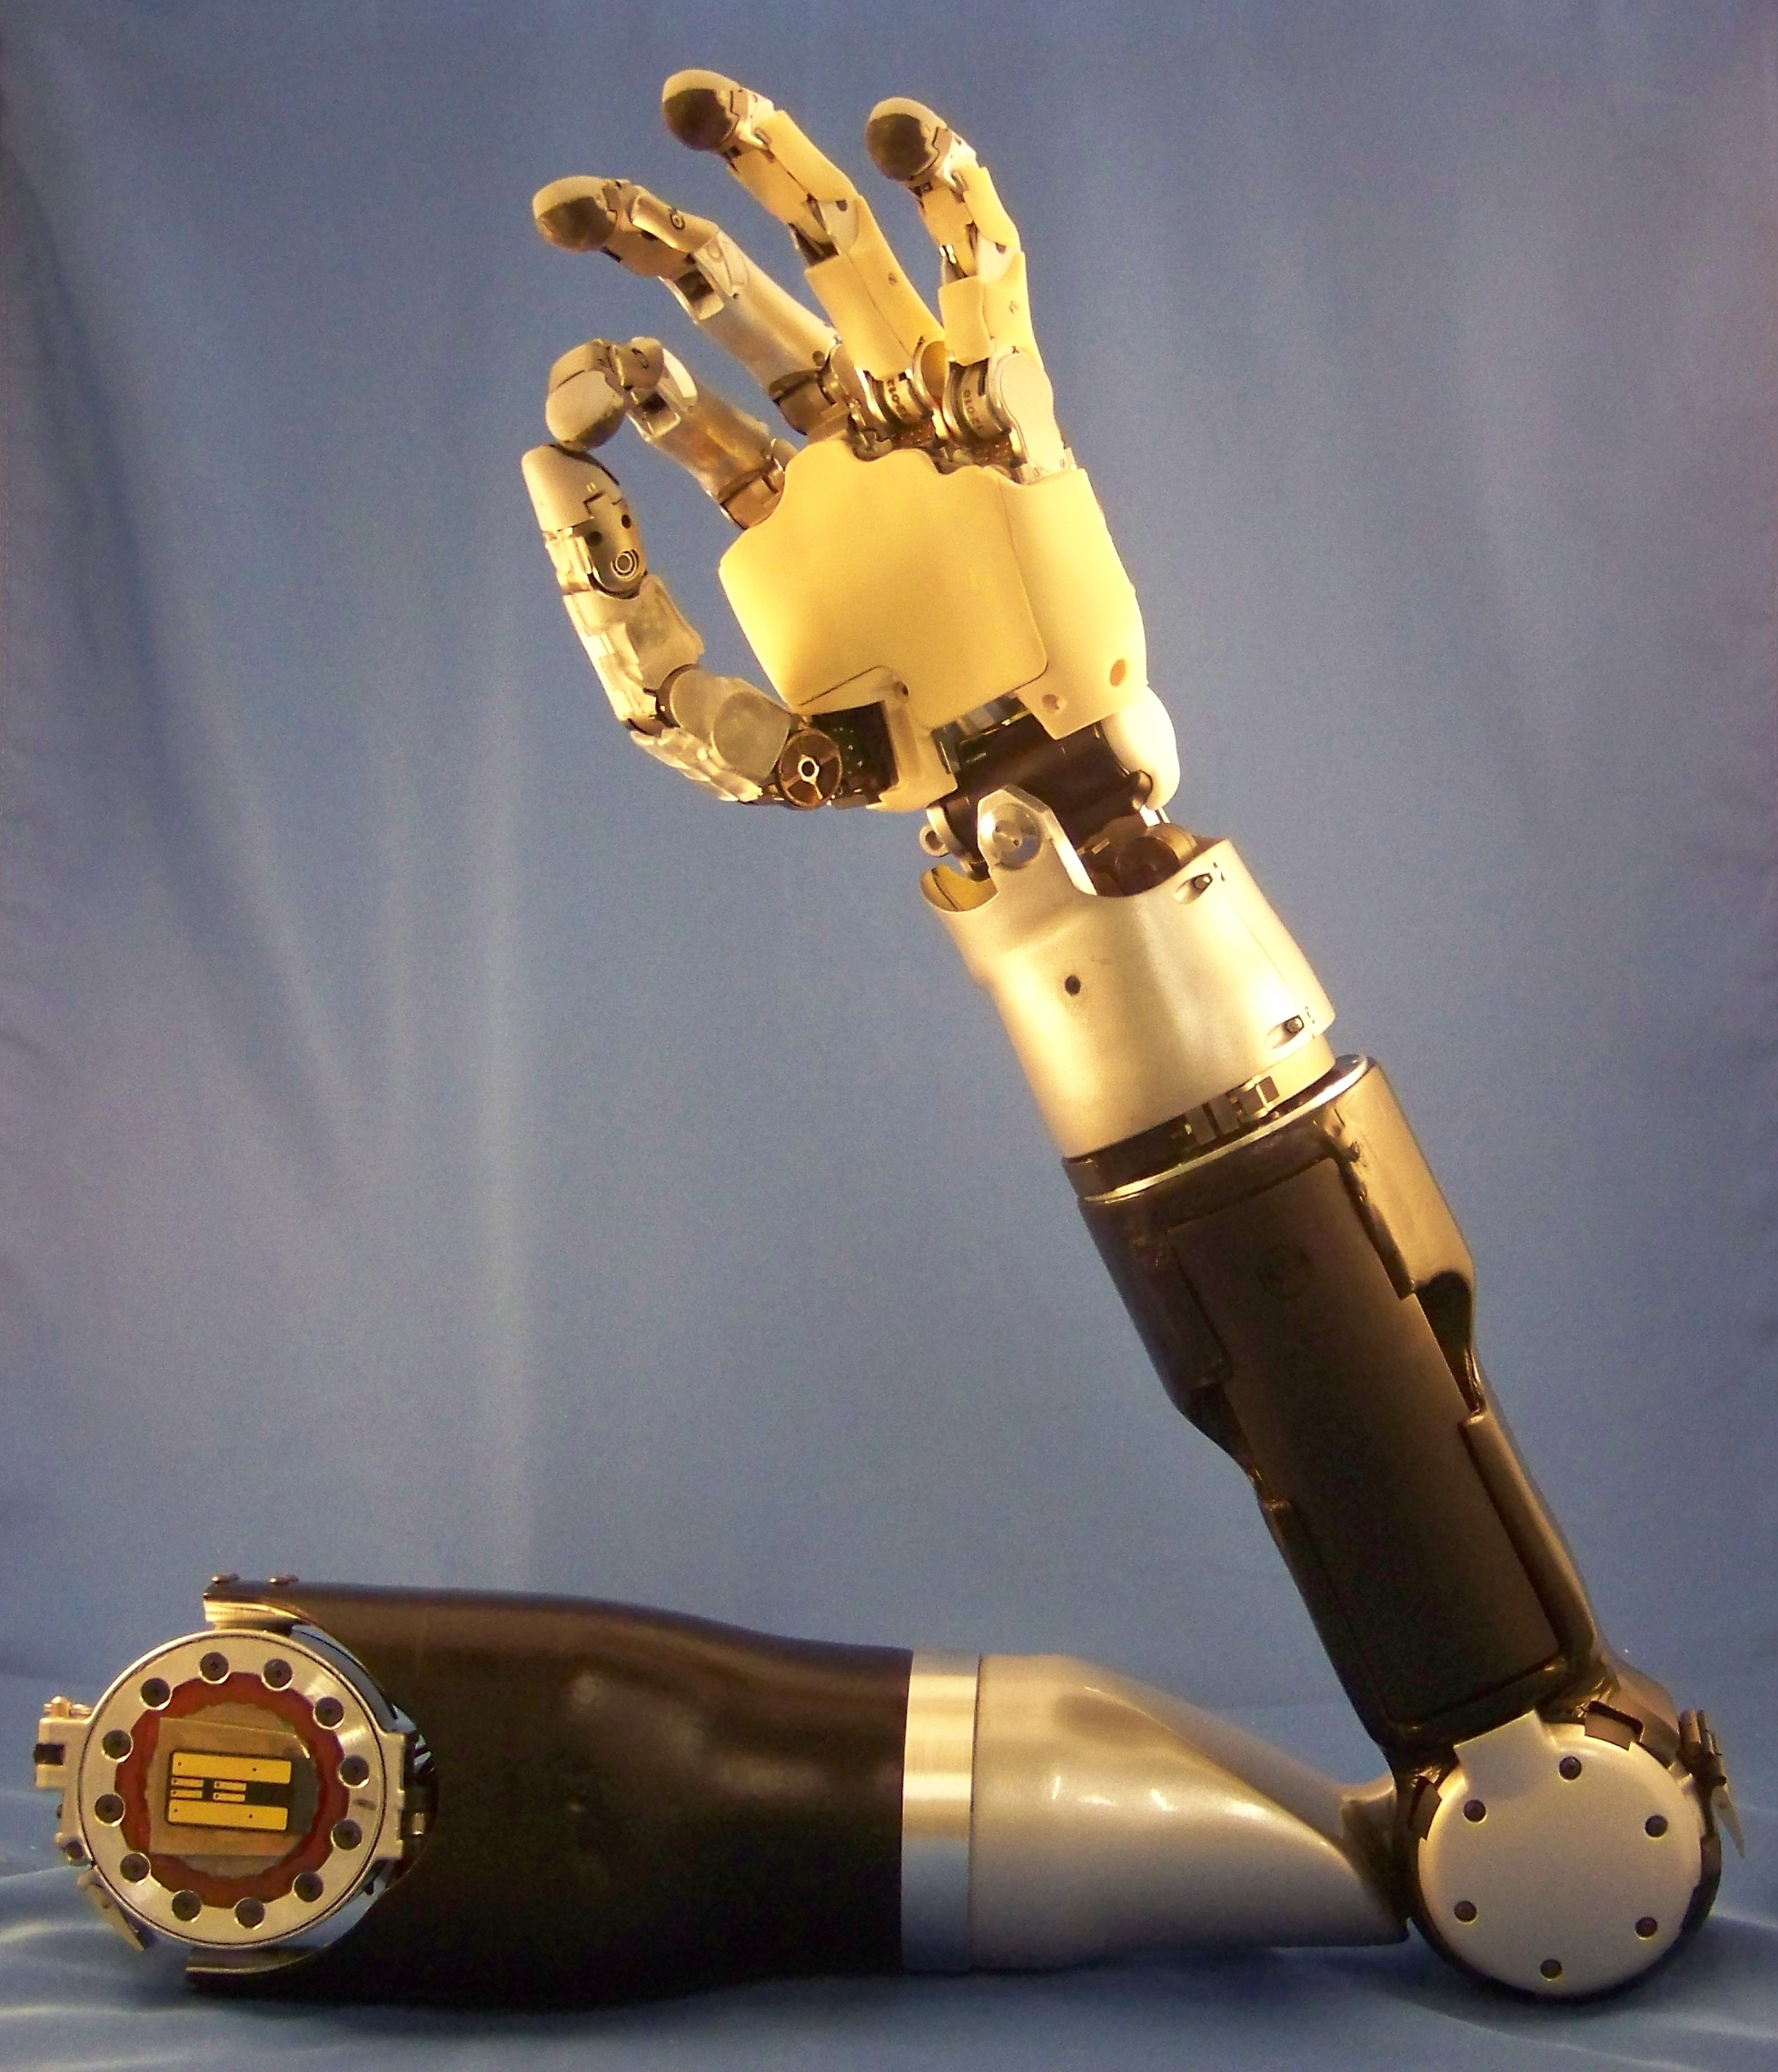 myoelectronic Arm prosthetic